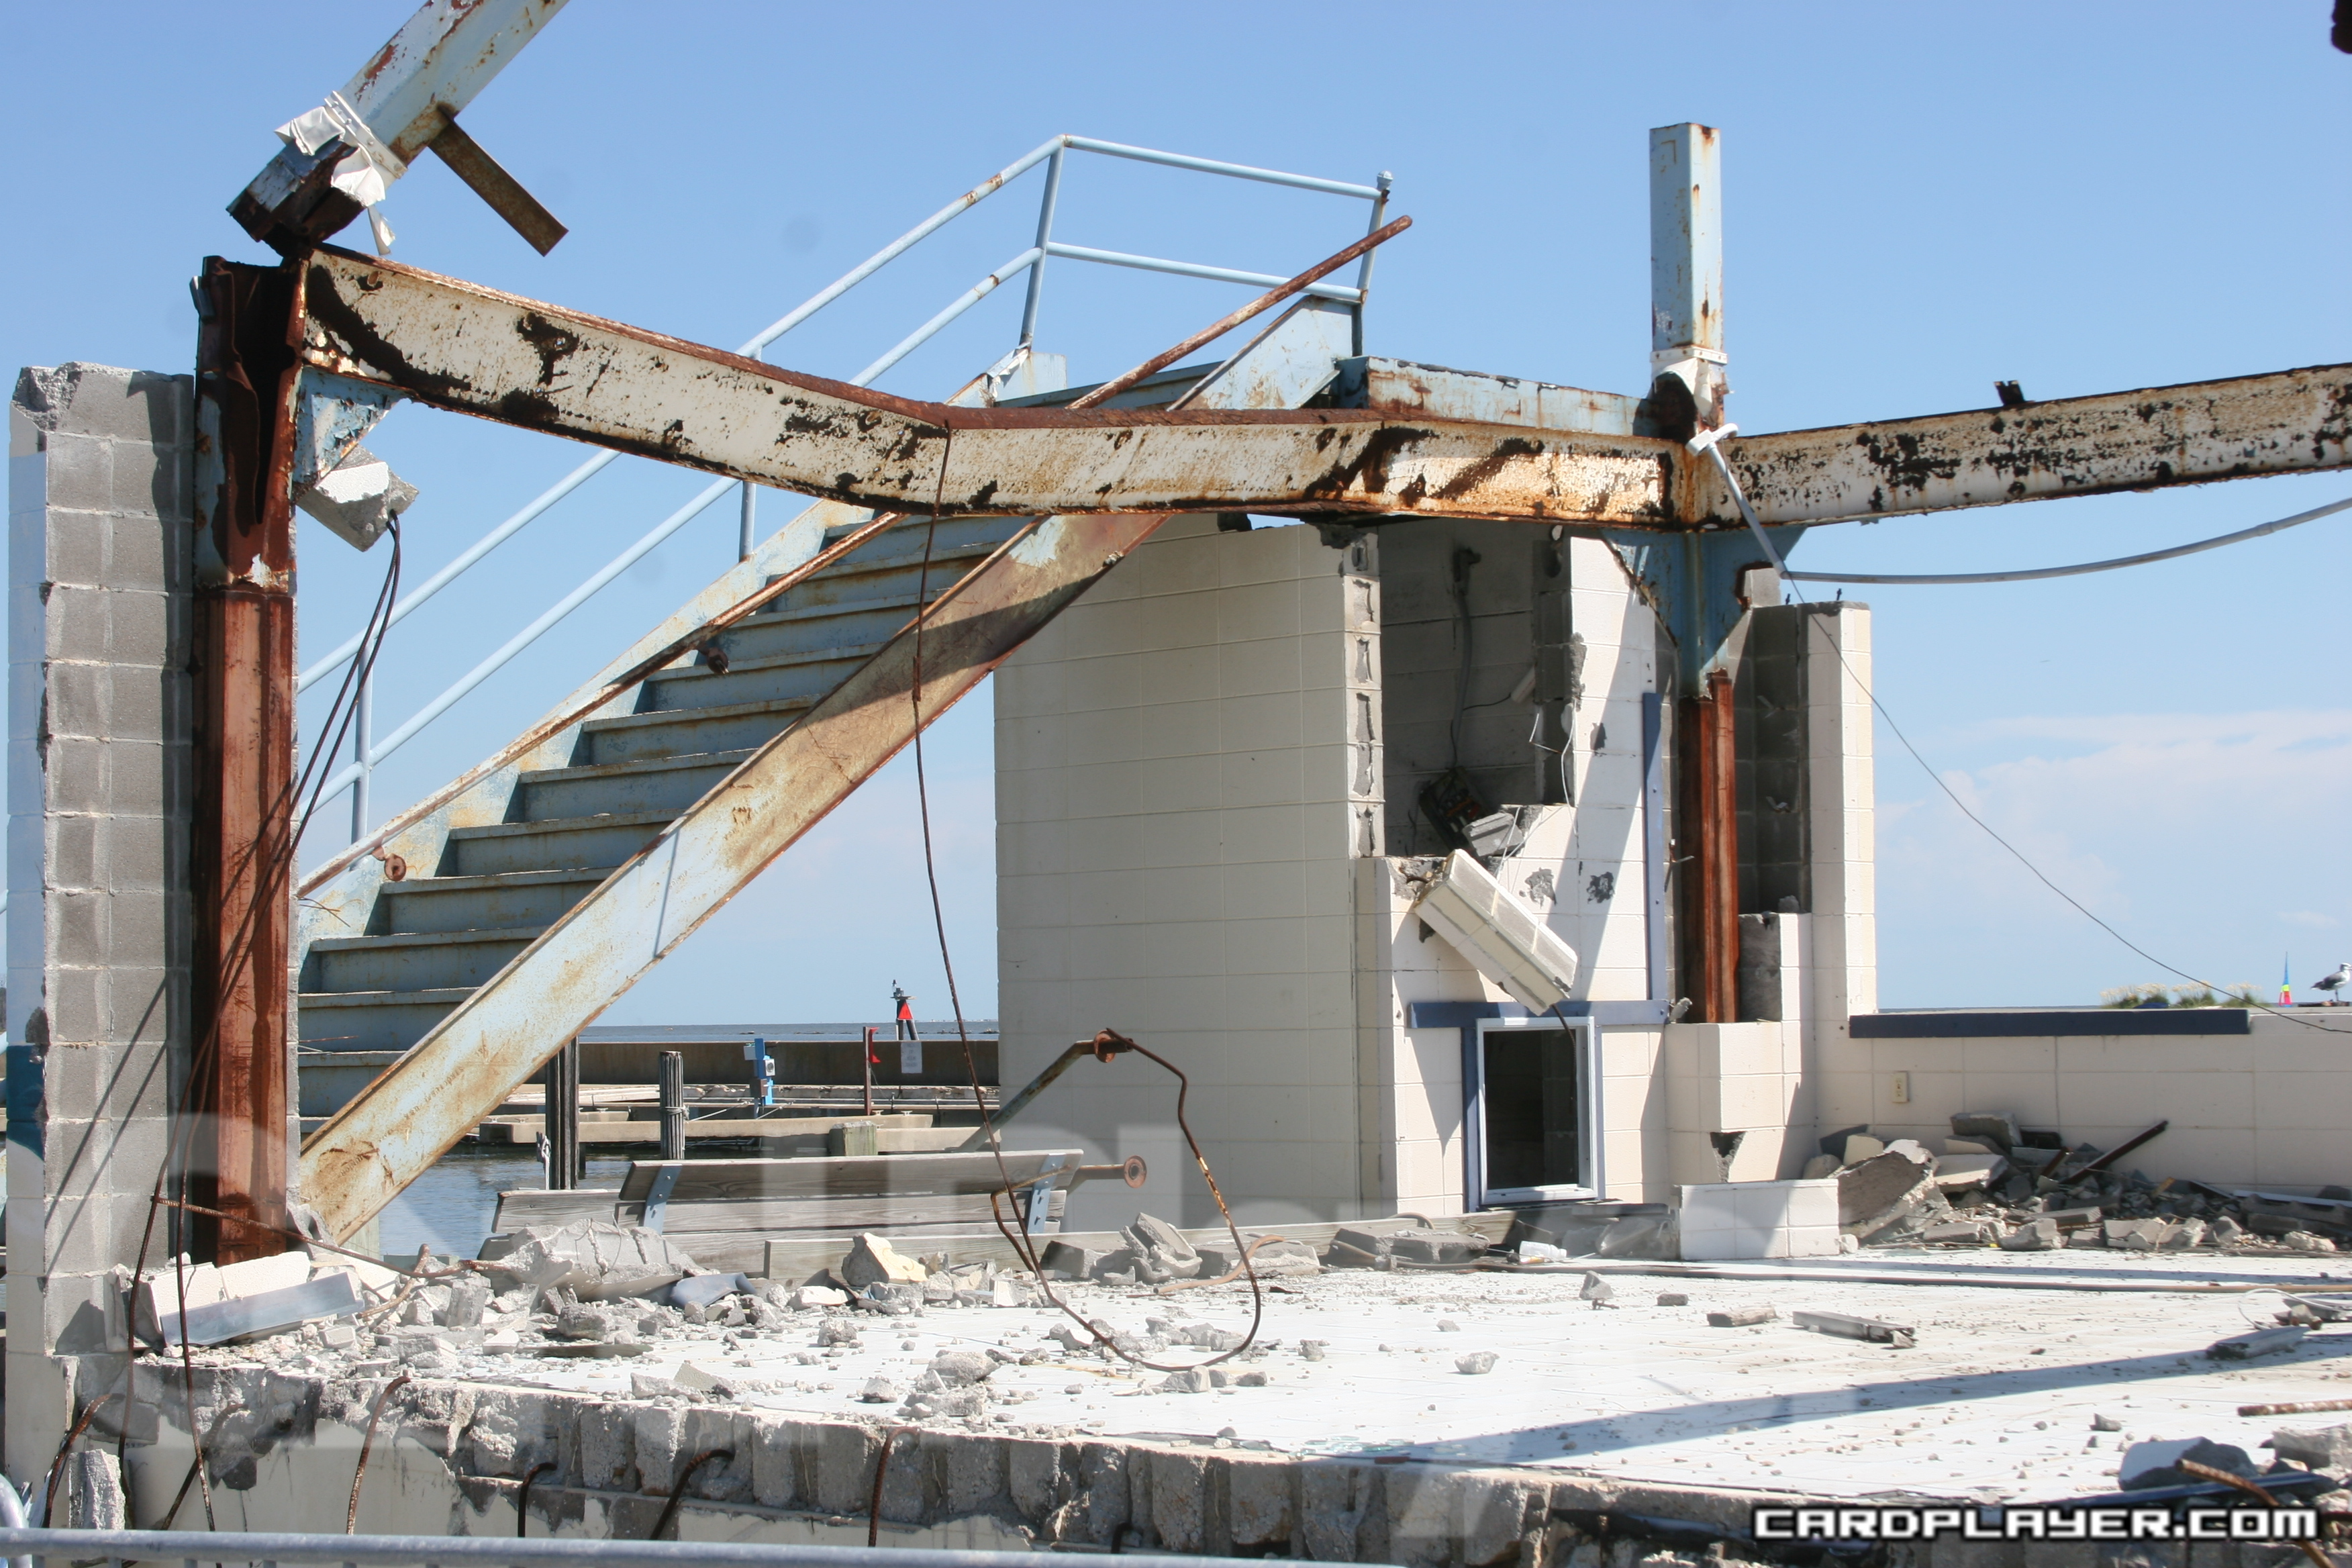 An example of the damage caused by Katrina